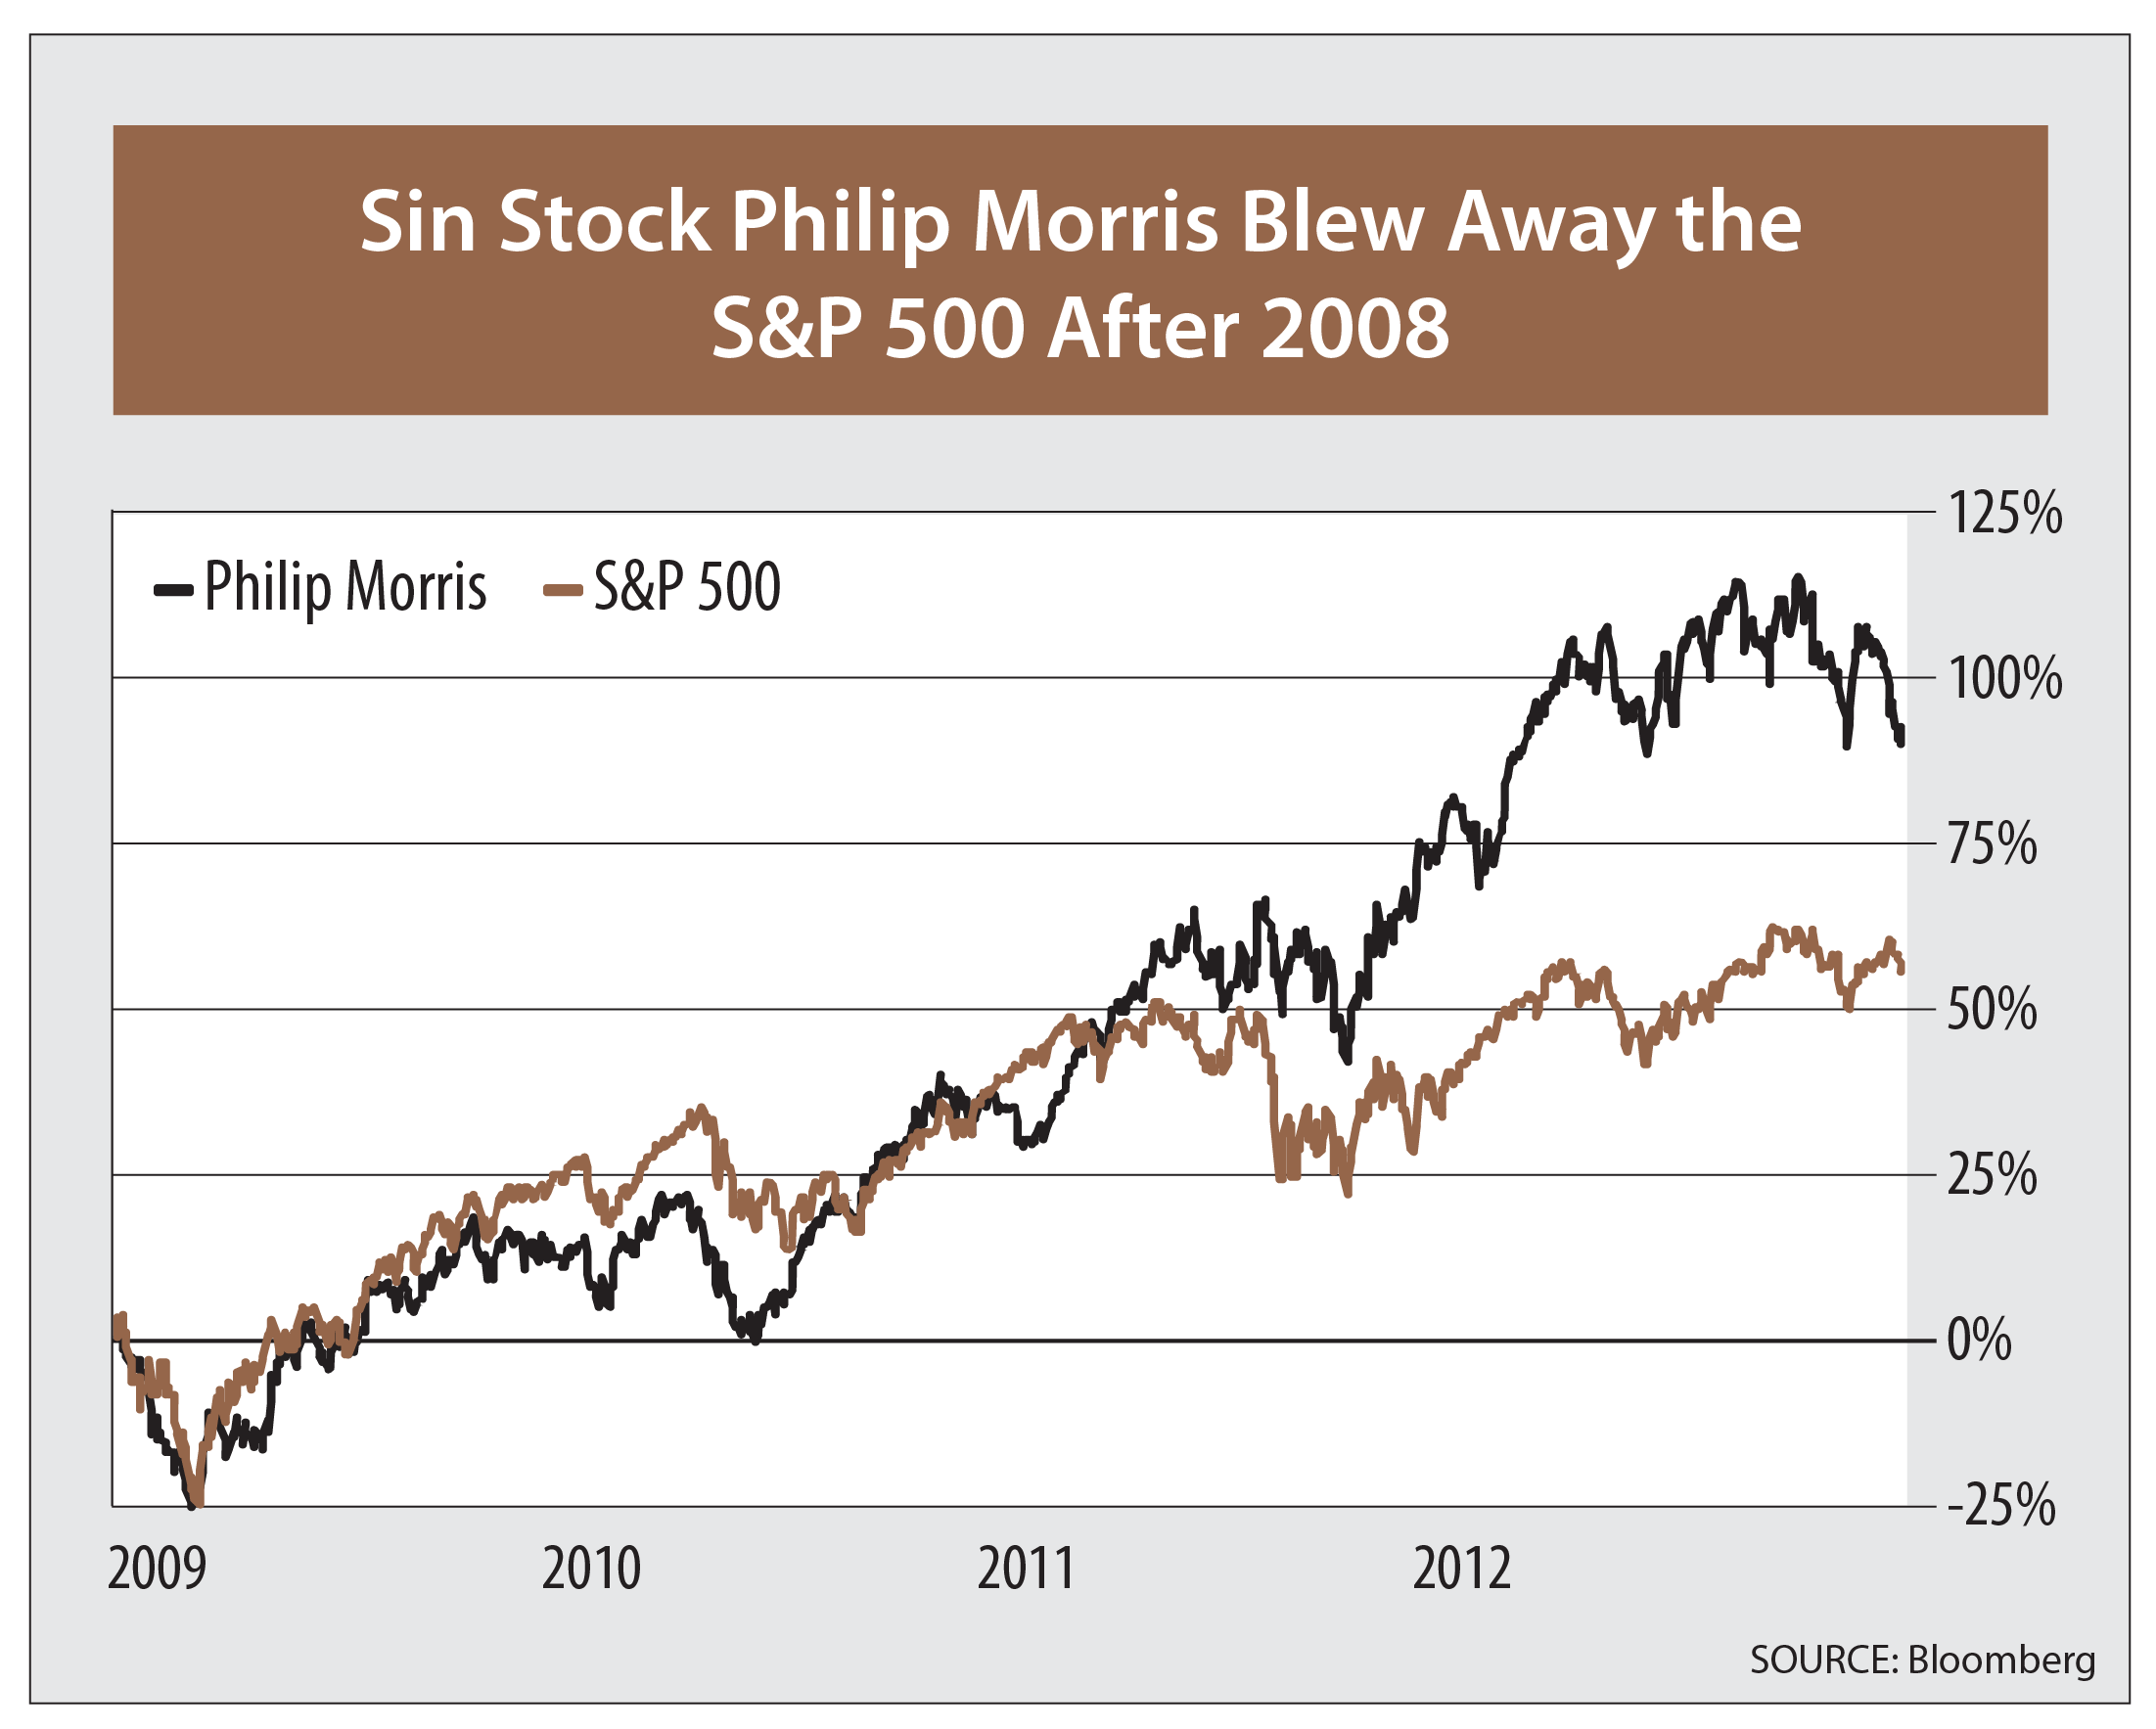 Chart showing the gains of Philip Morris stock compared with the S&P 500 Index from 2008 to 2012. Philip Morris rose more than the S&P 500 Index.